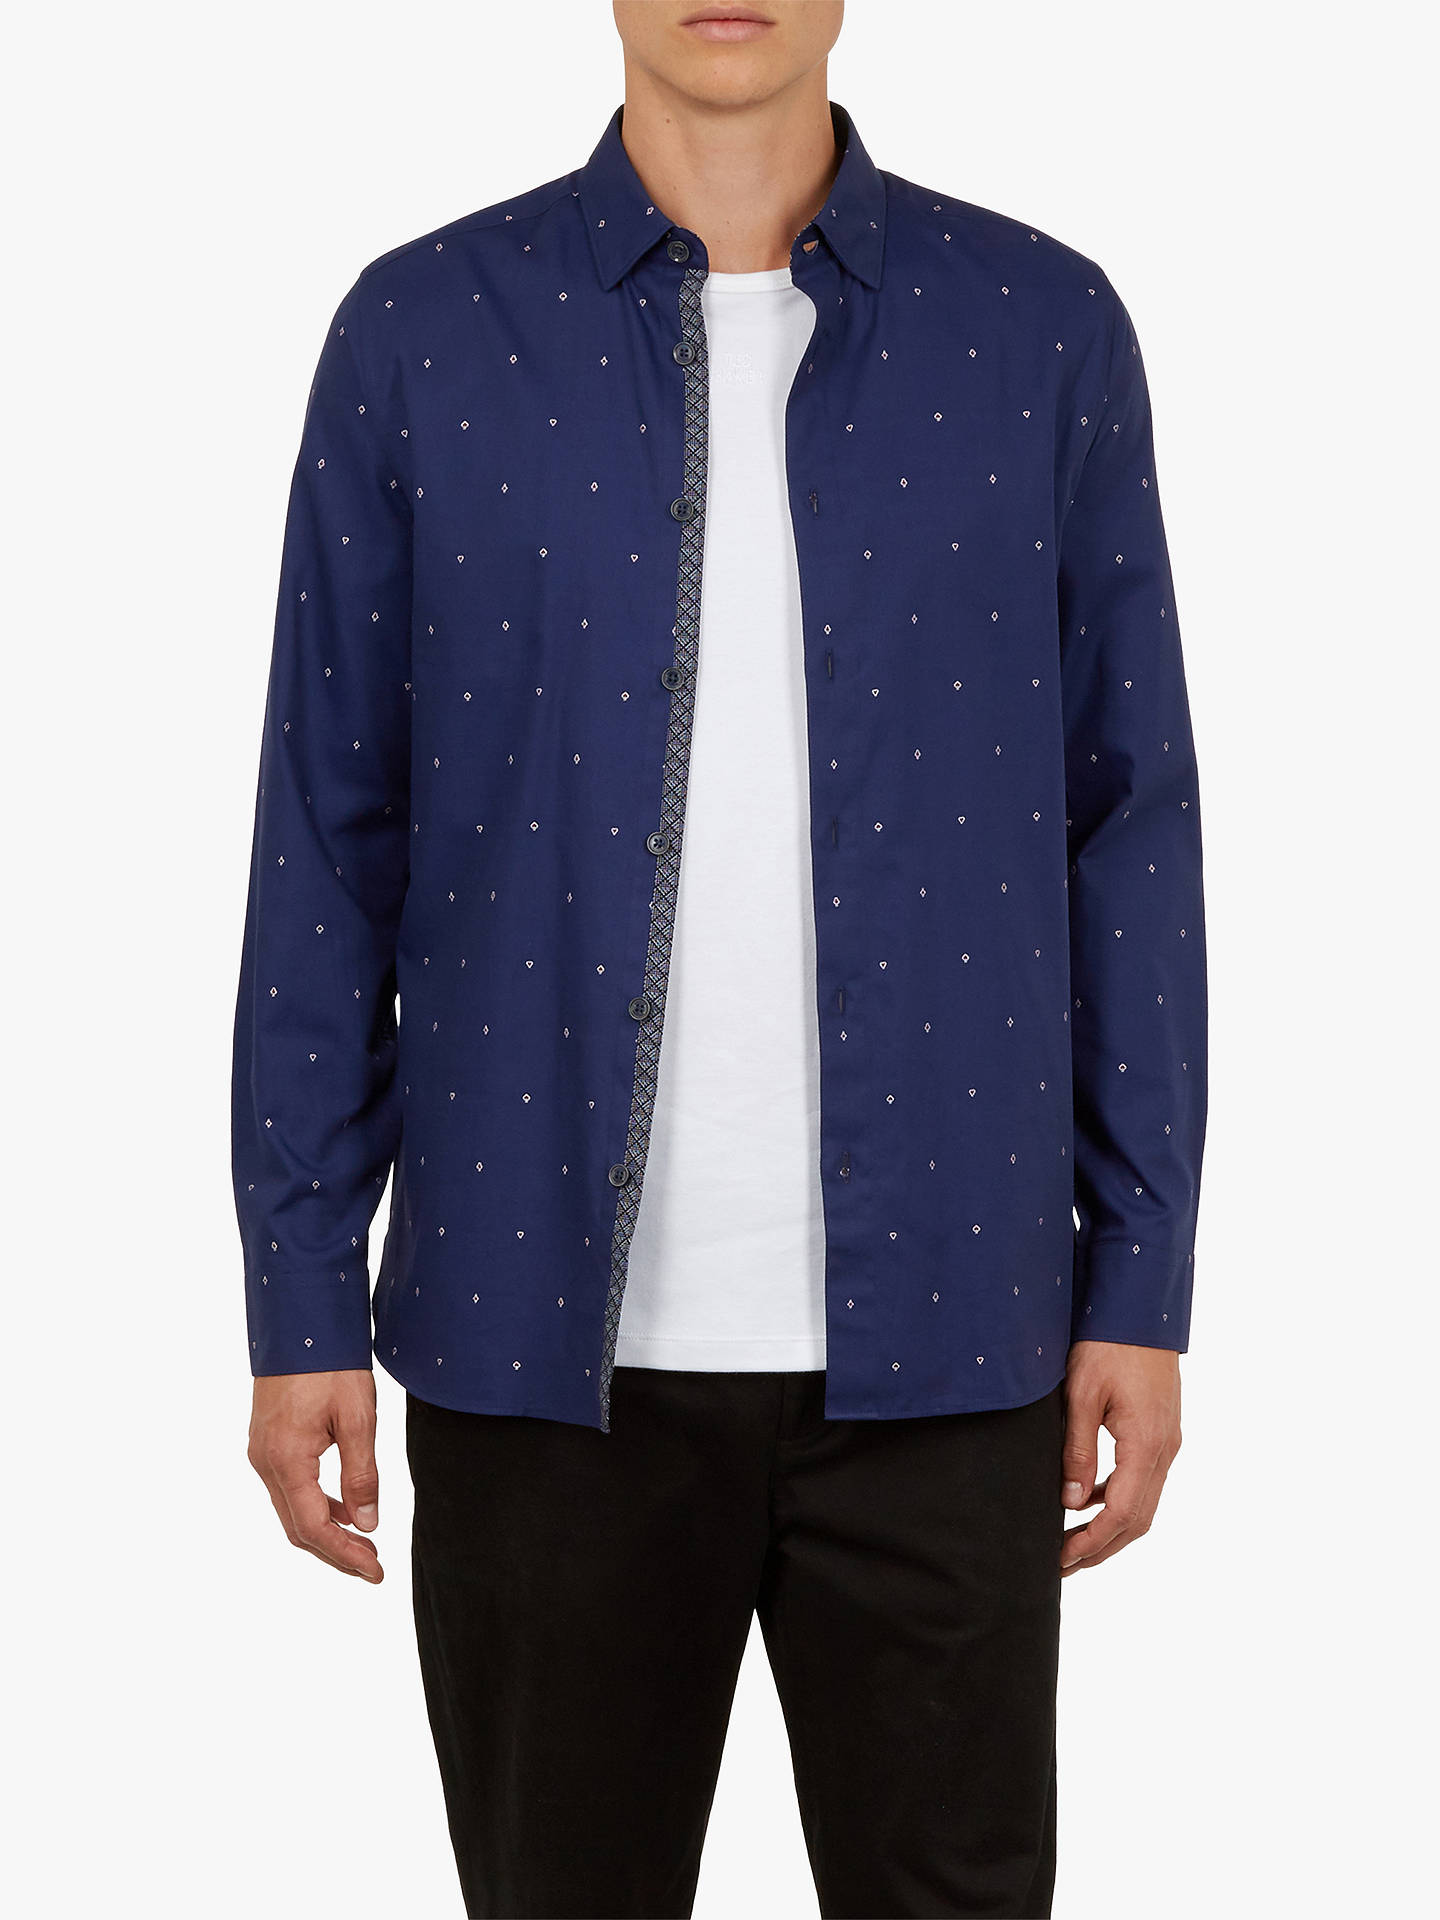 BuyTed Baker Peckham Playing Card Symbol Shirt, Navy, 17.5 Online at johnlewis.com